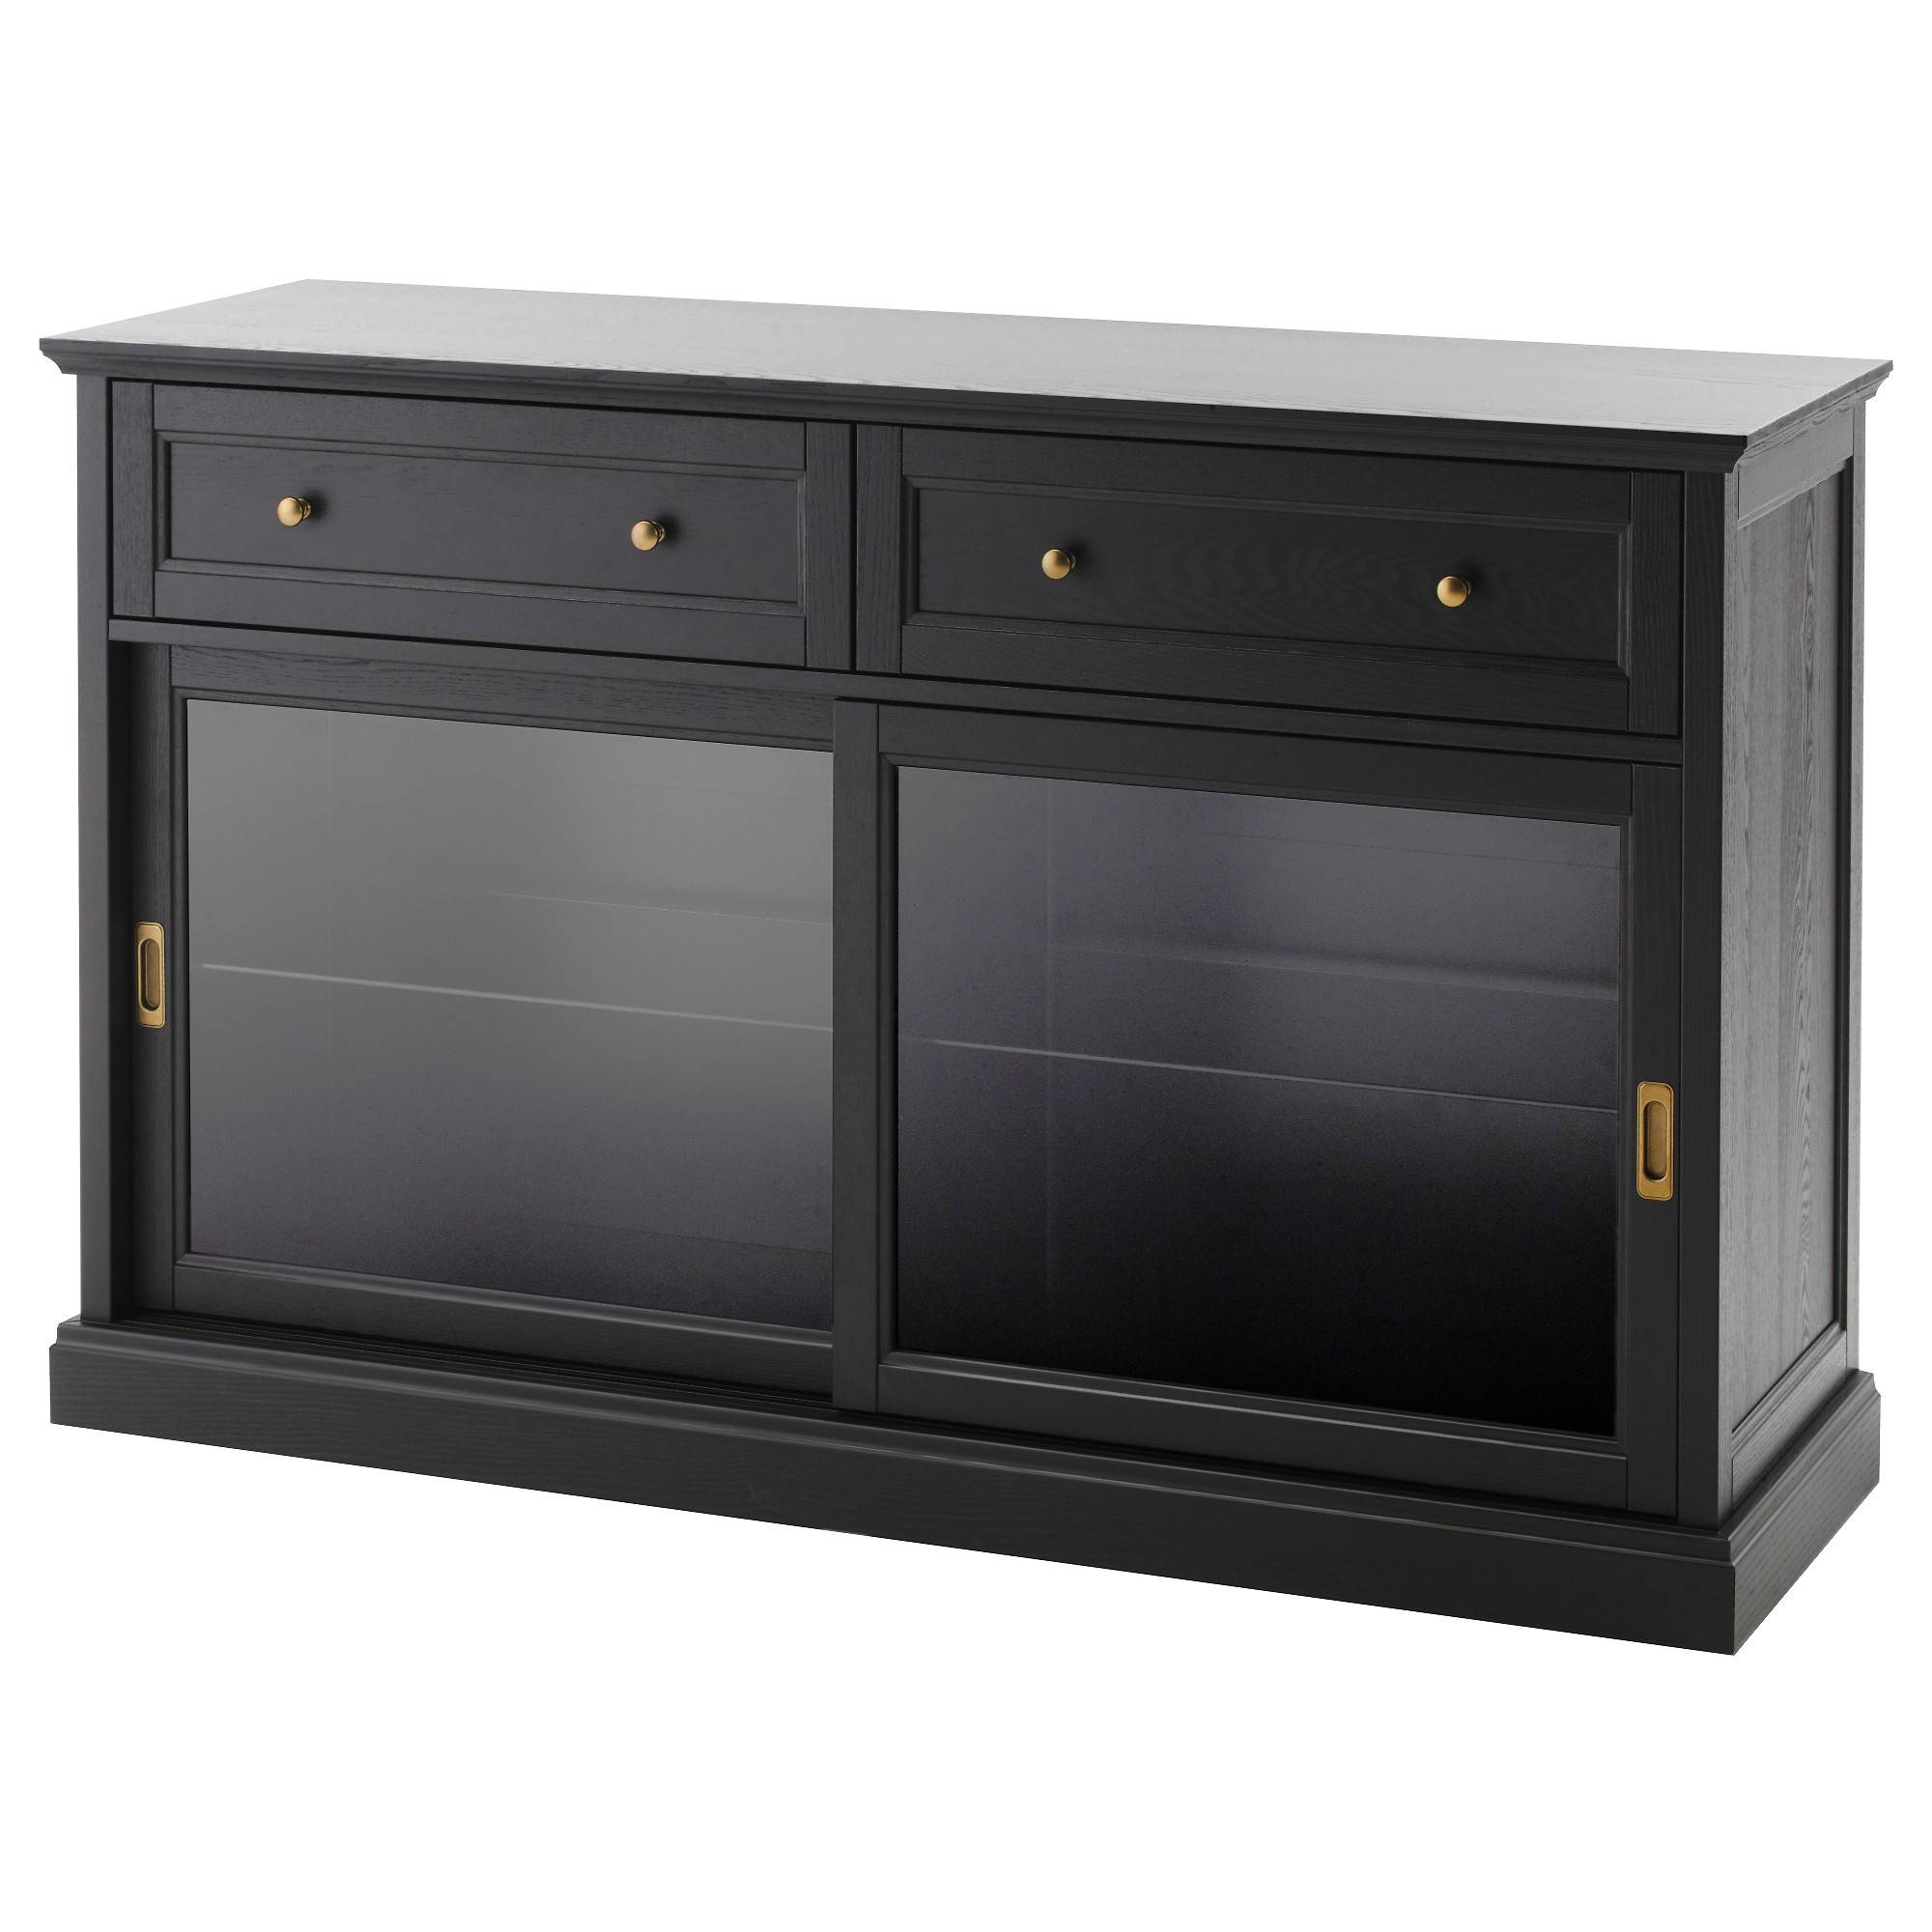 Buffet Tables & Sideboards - Ikea inside Dark Sideboards Furniture (Image 6 of 30)